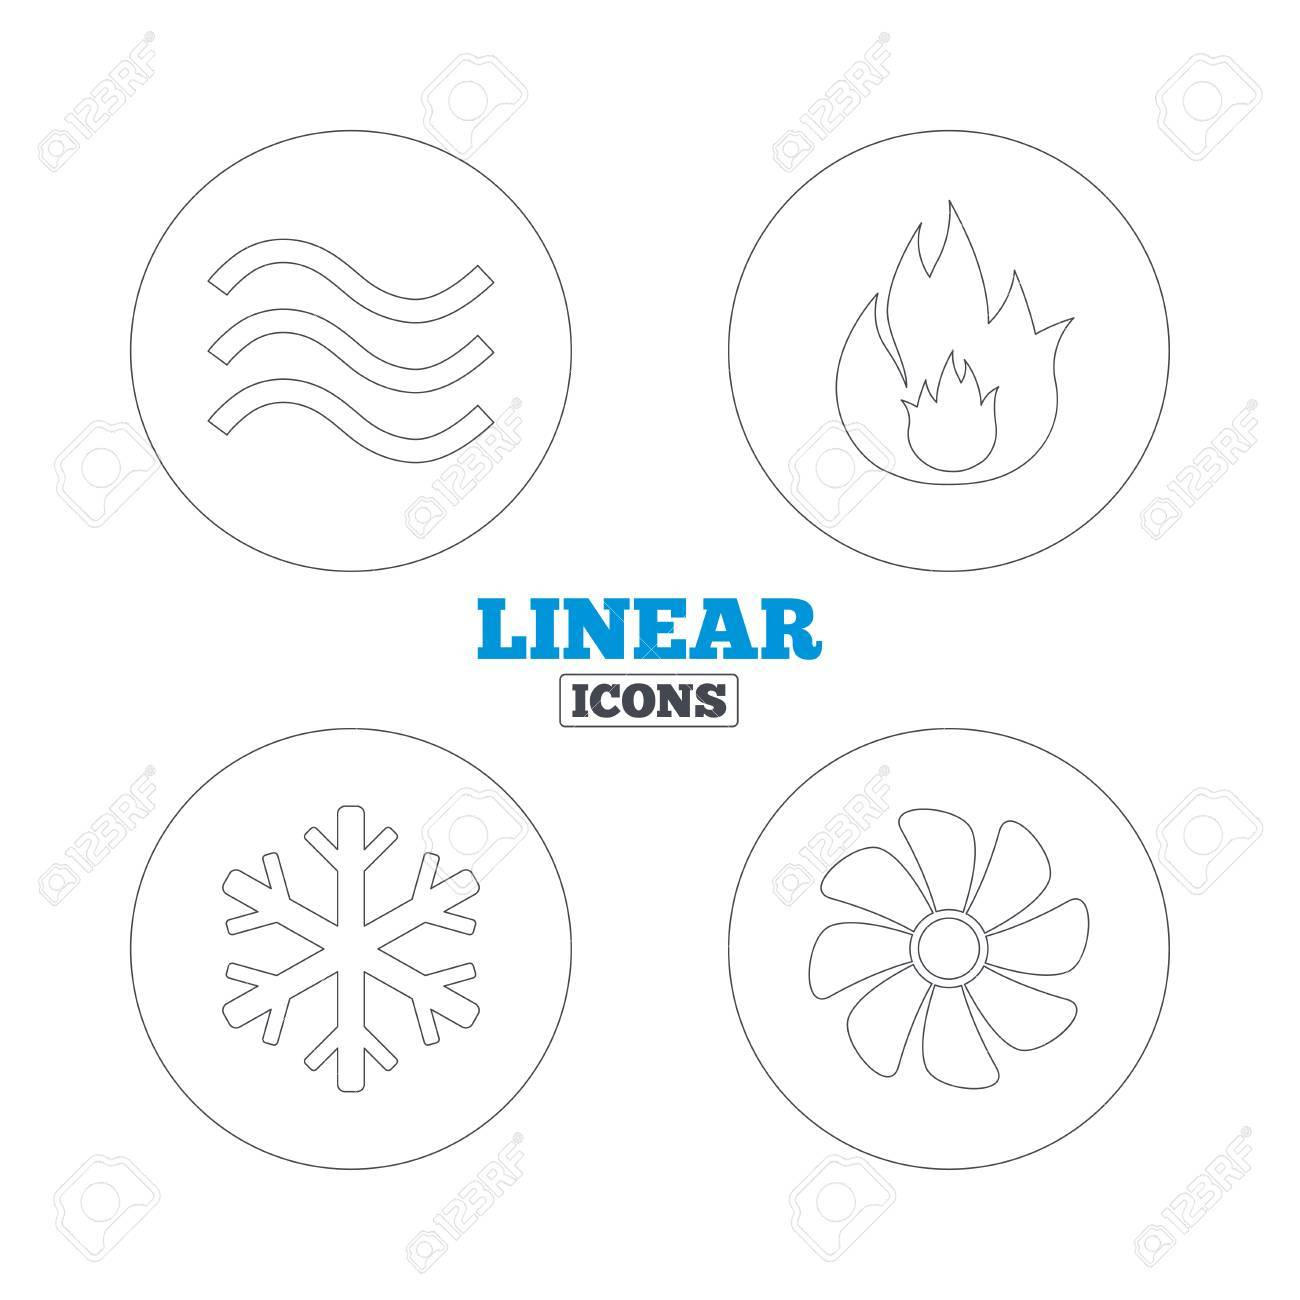 hvac icons  heating, ventilating and air conditioning symbols  water  supply  climate control